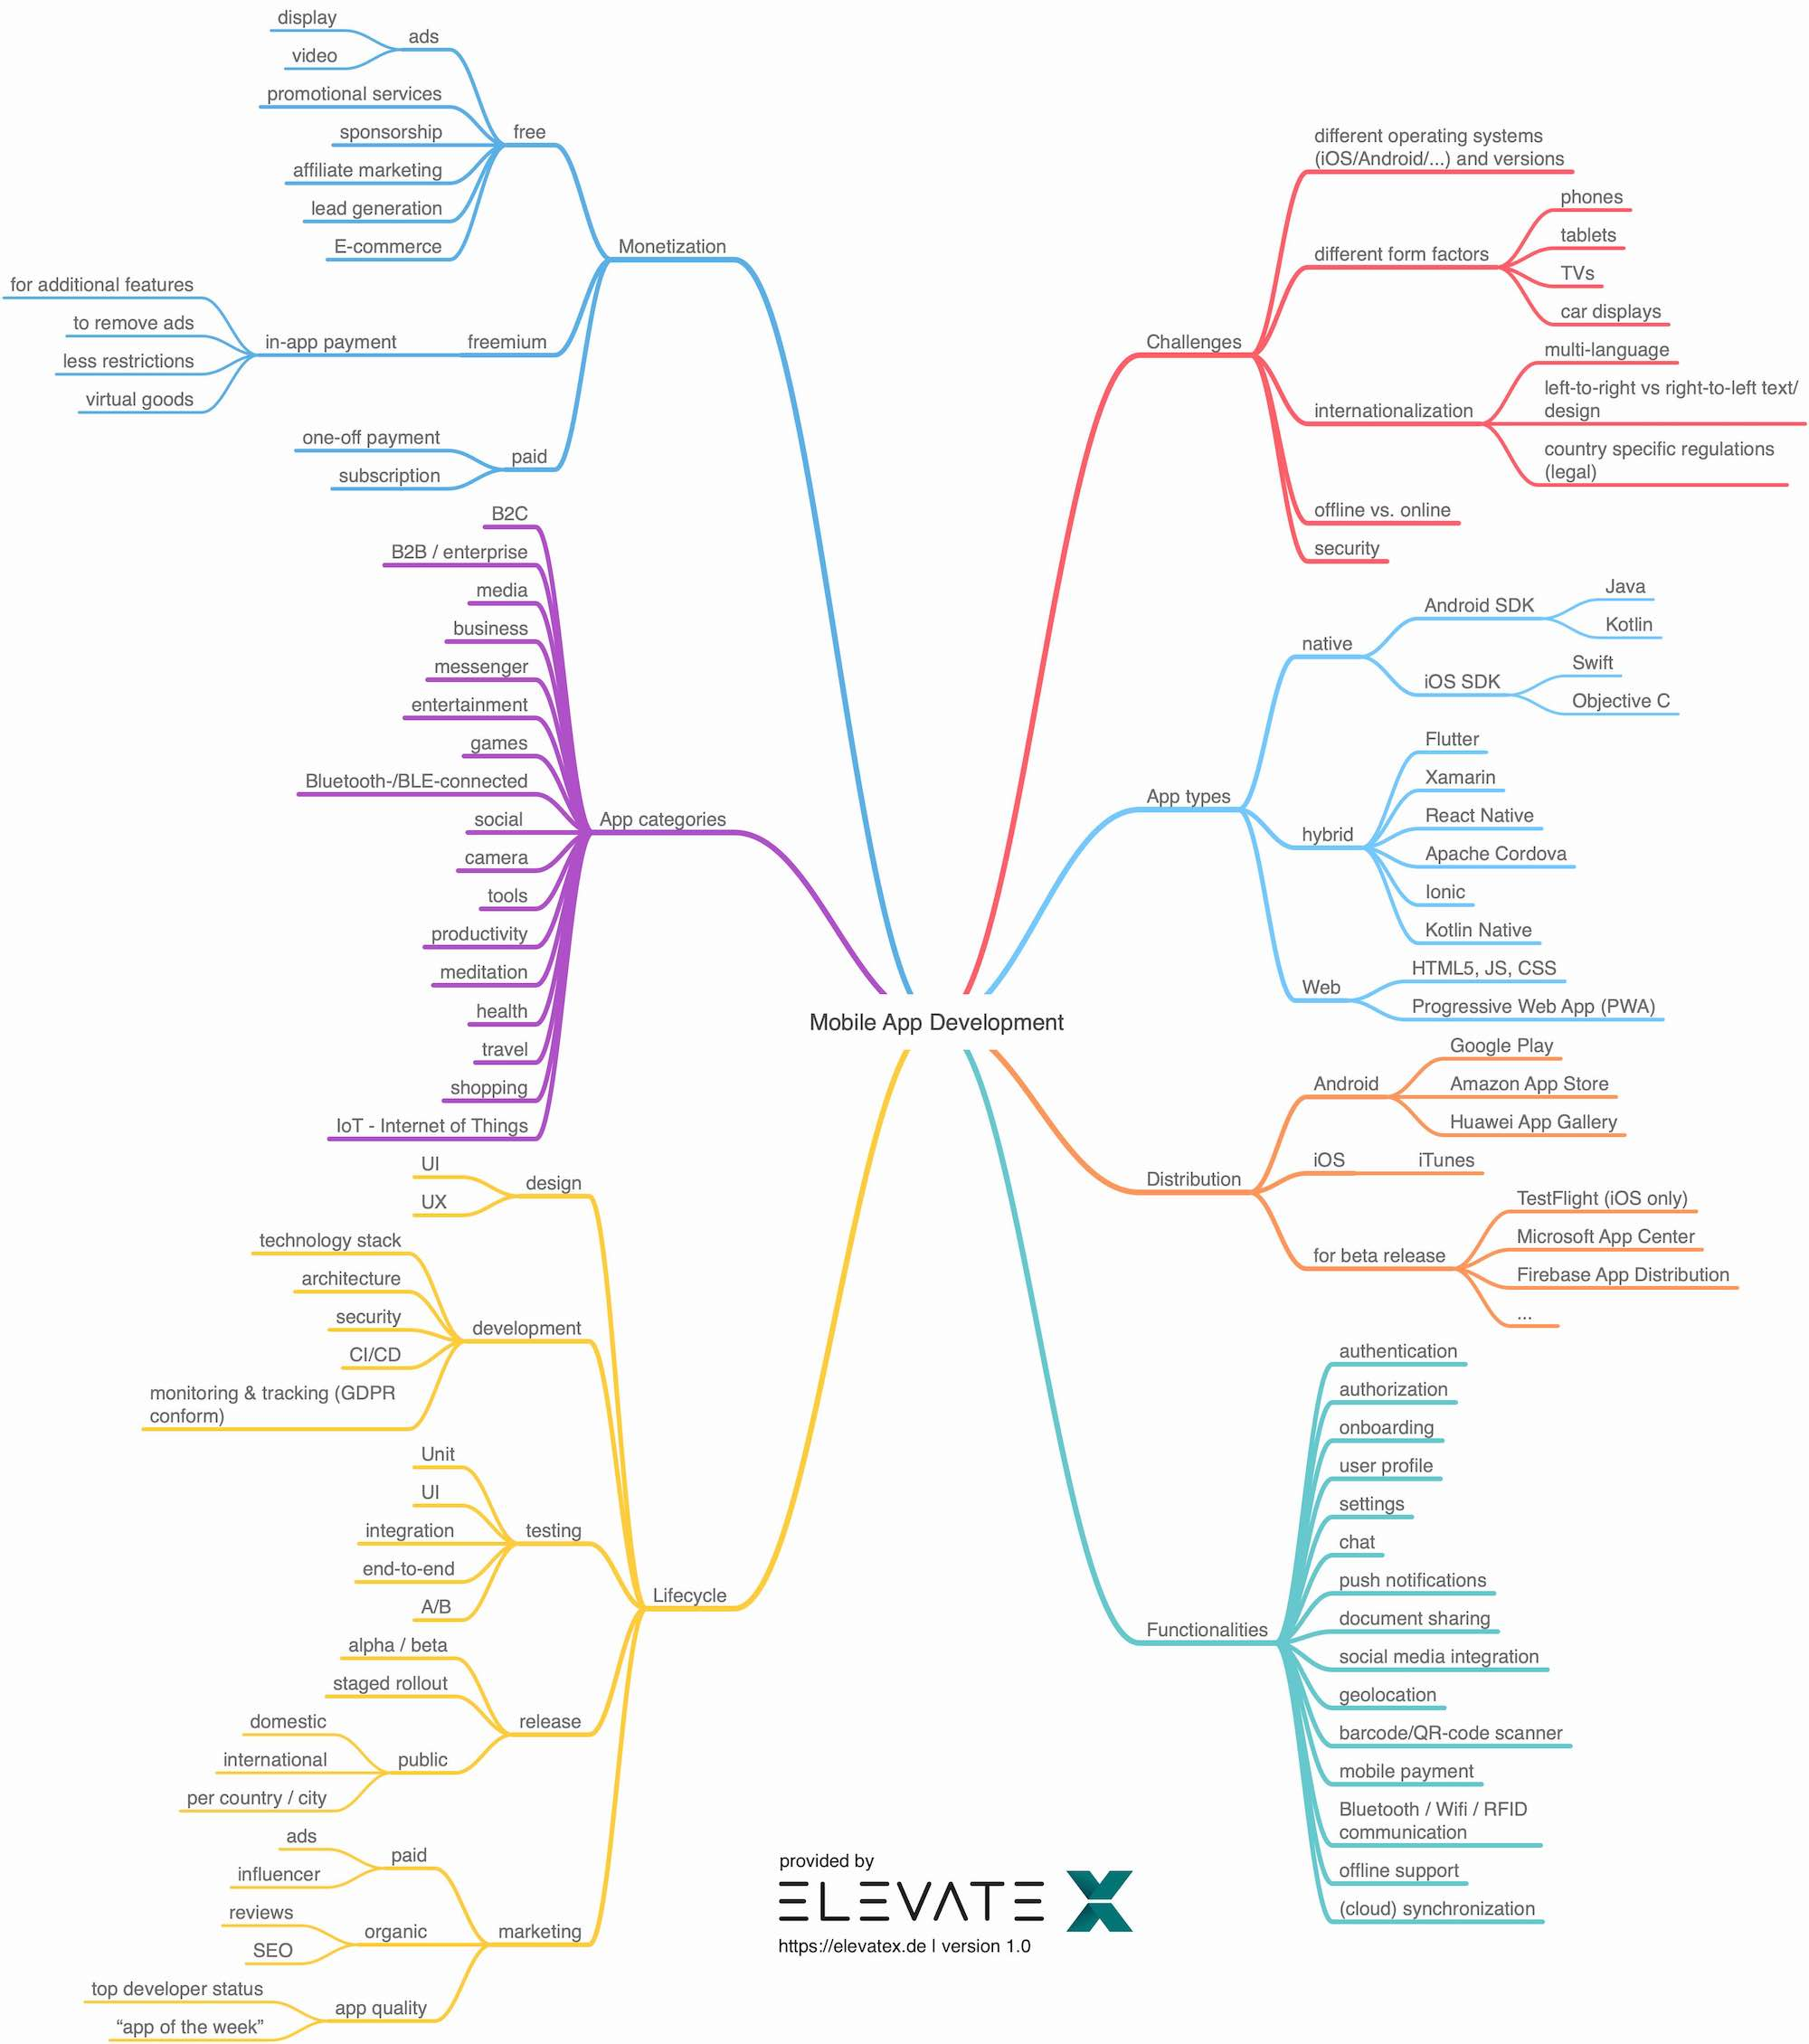 Mobile App Development Mind Map ElevateX